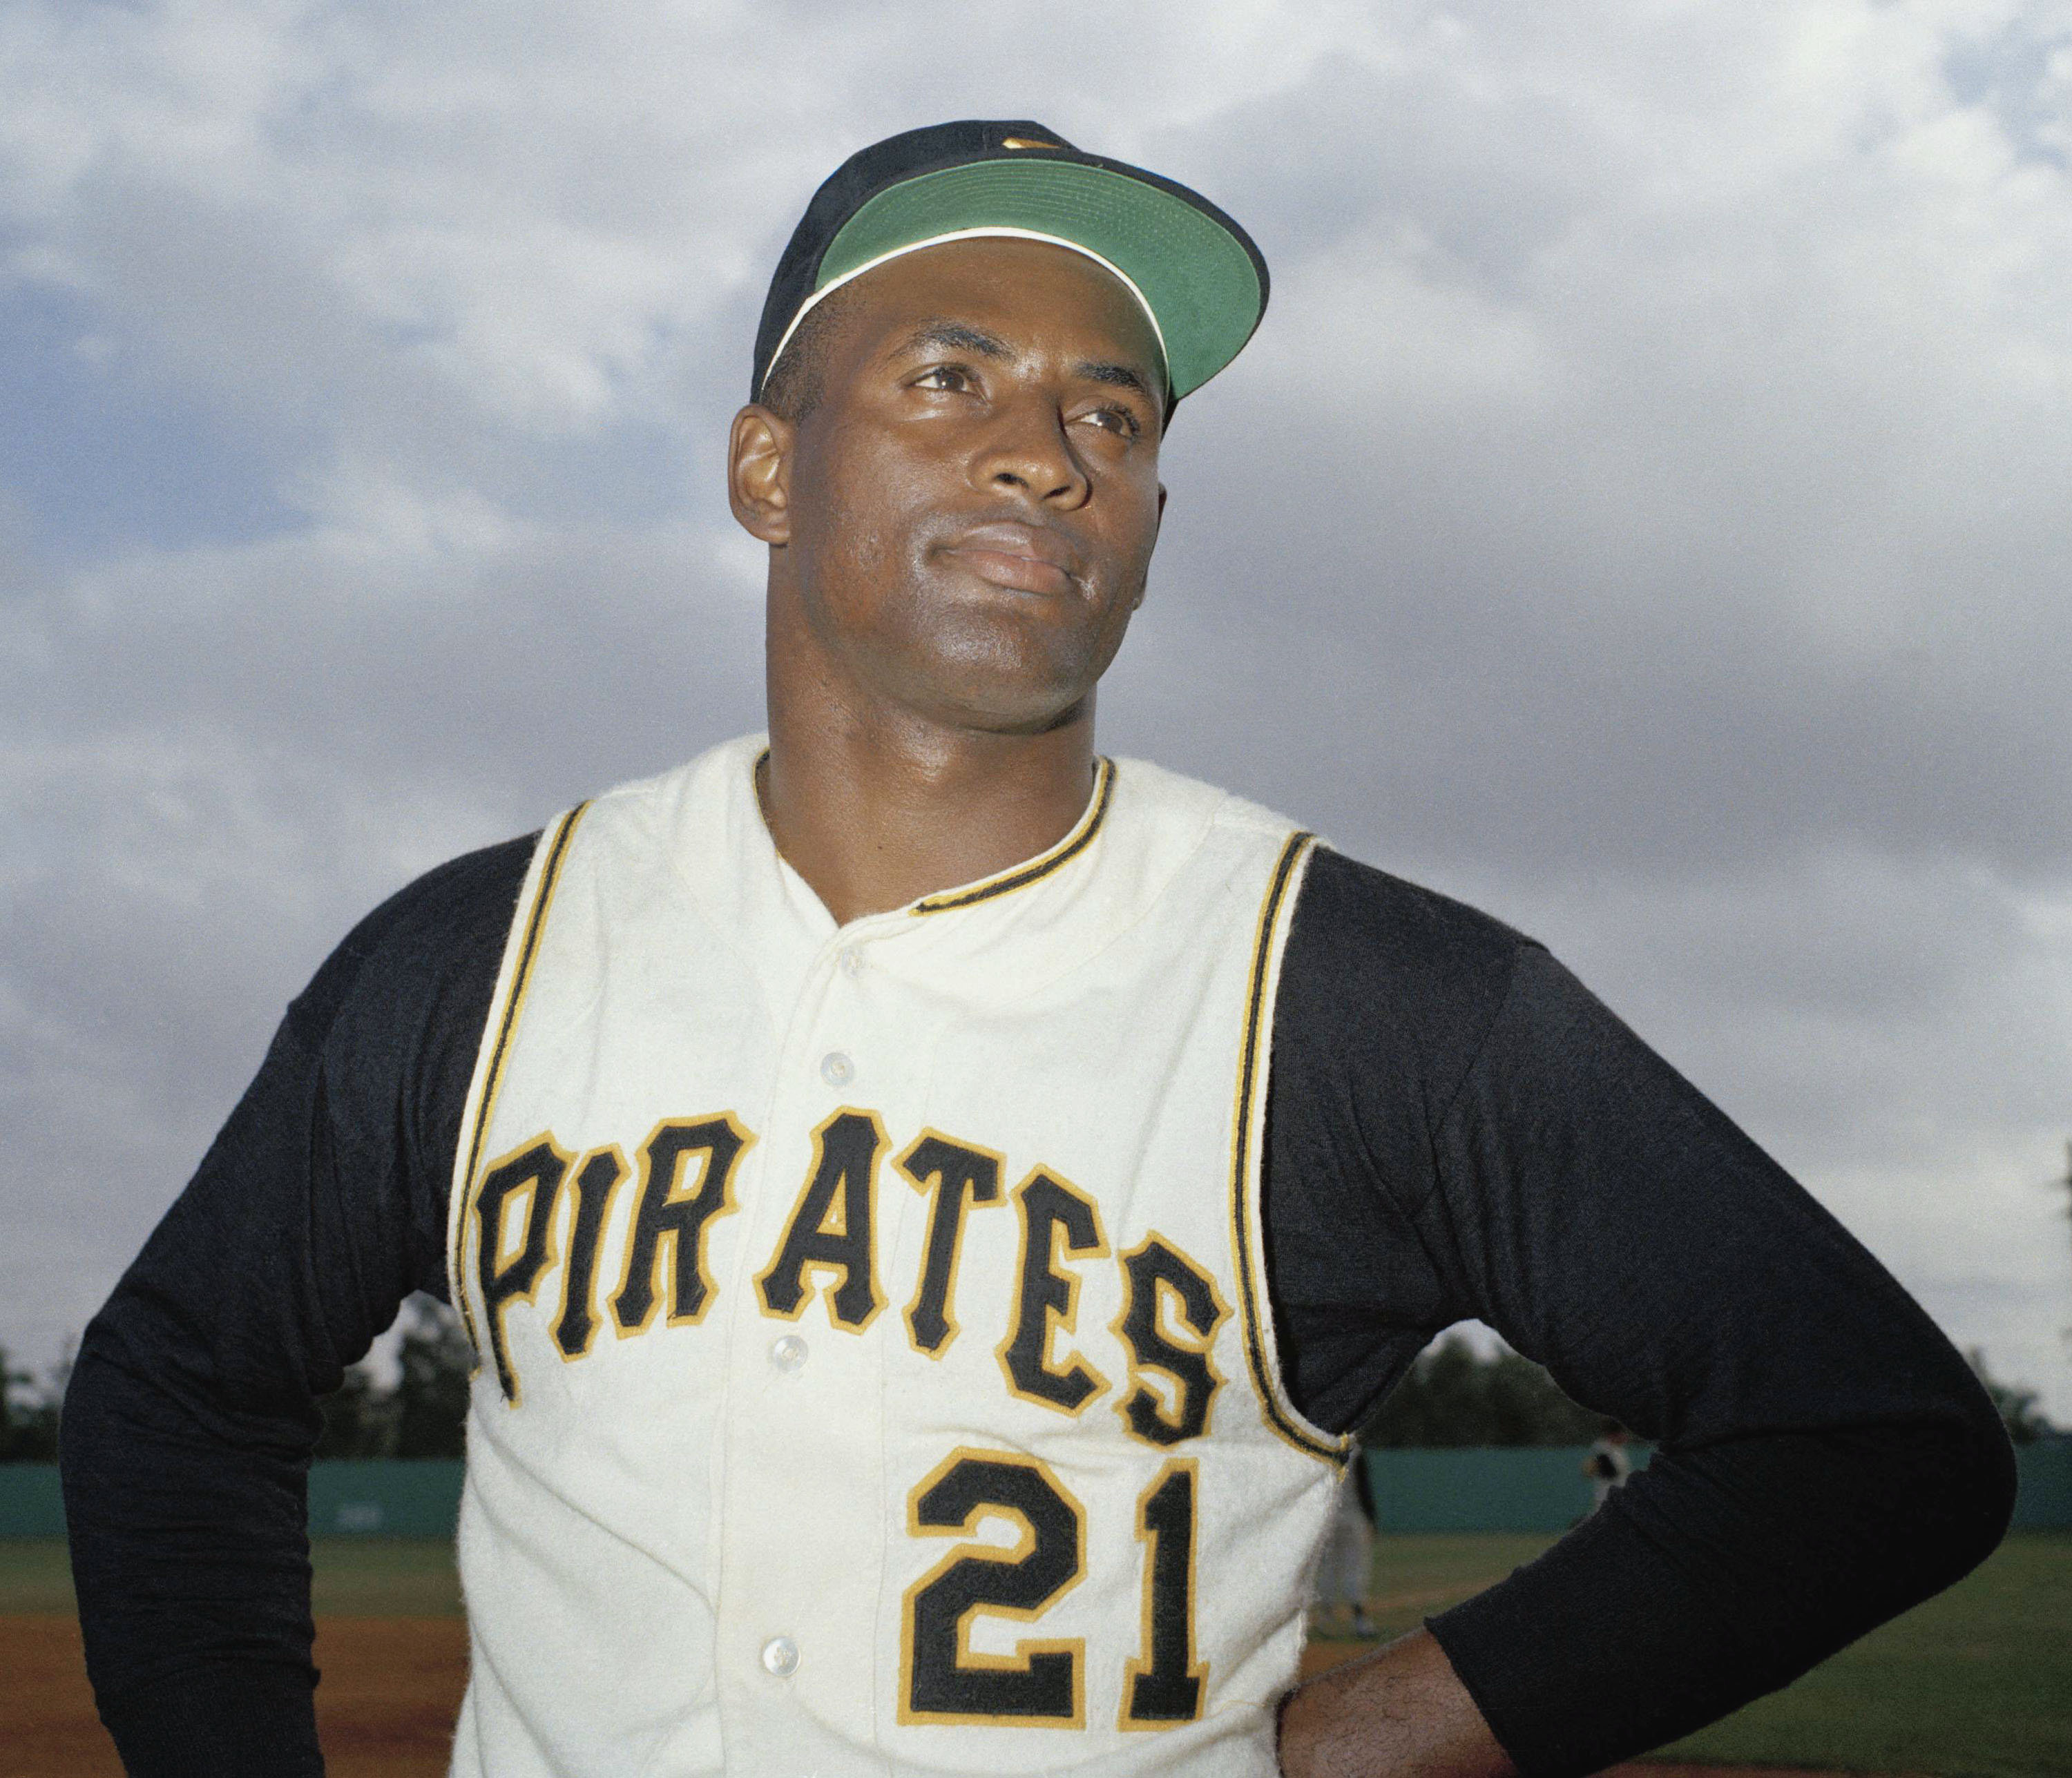 a biography of roberto clemente the baseball player Roberto clemente's birthday and biography roberto clemente was a puerto rican baseball player best remembered for his glittering career in the major baseball league.